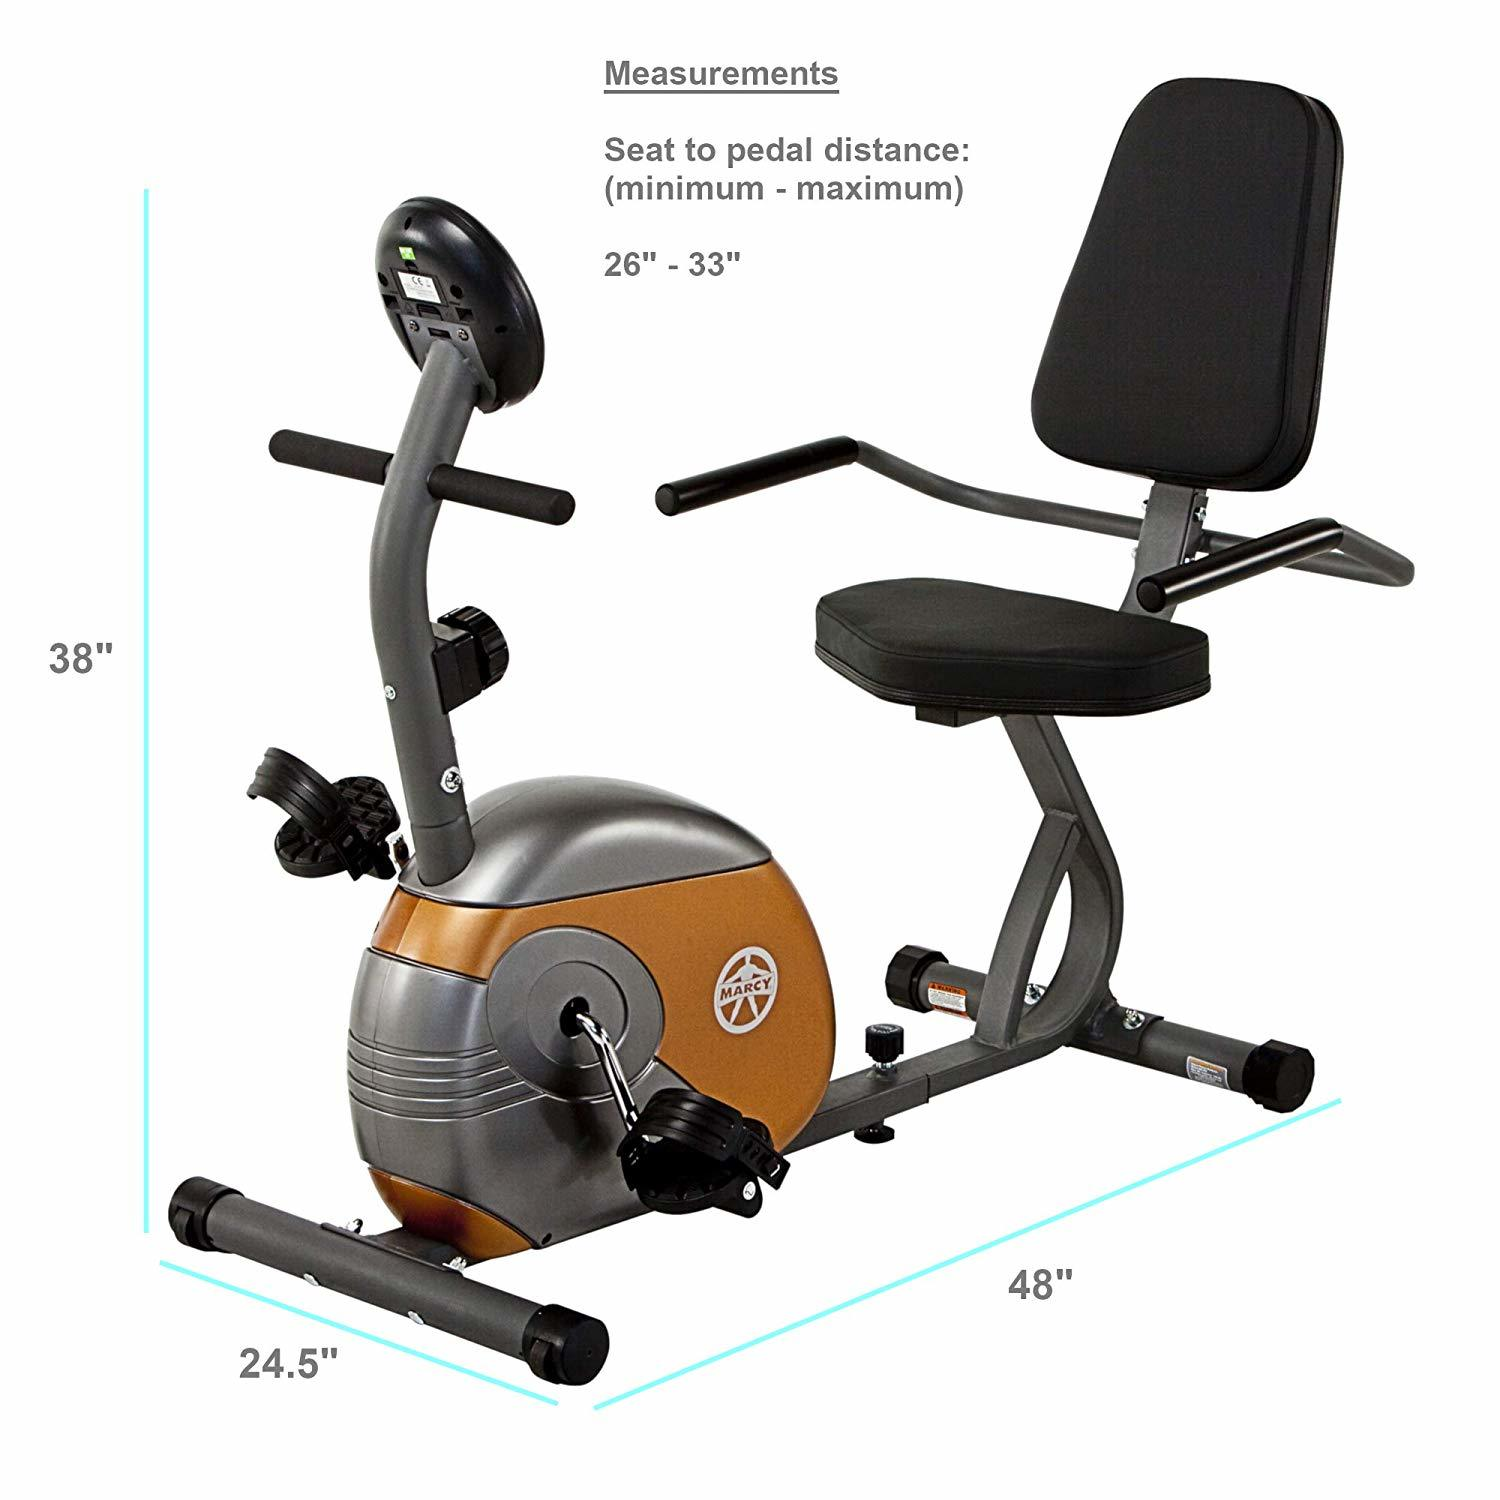 7 Best recumbent exercise bikes reviewed 2